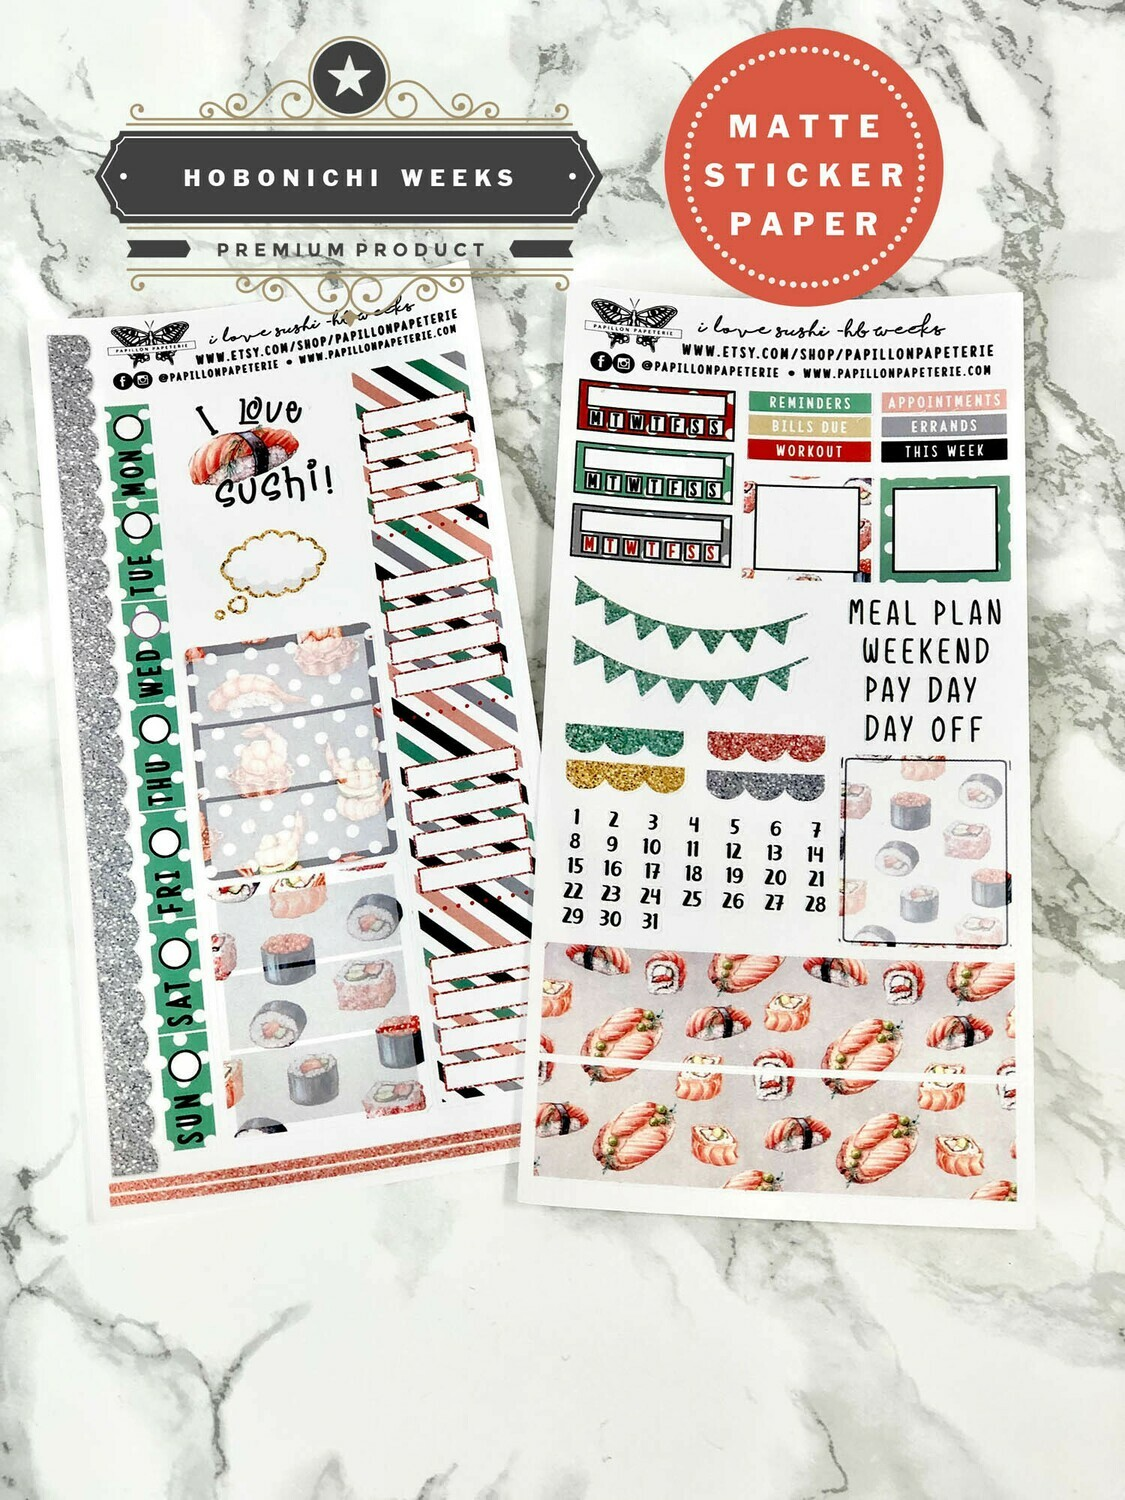 I Love Sushi Weekly Sticker Kit | Planner stickers for Hobonichi Weeks